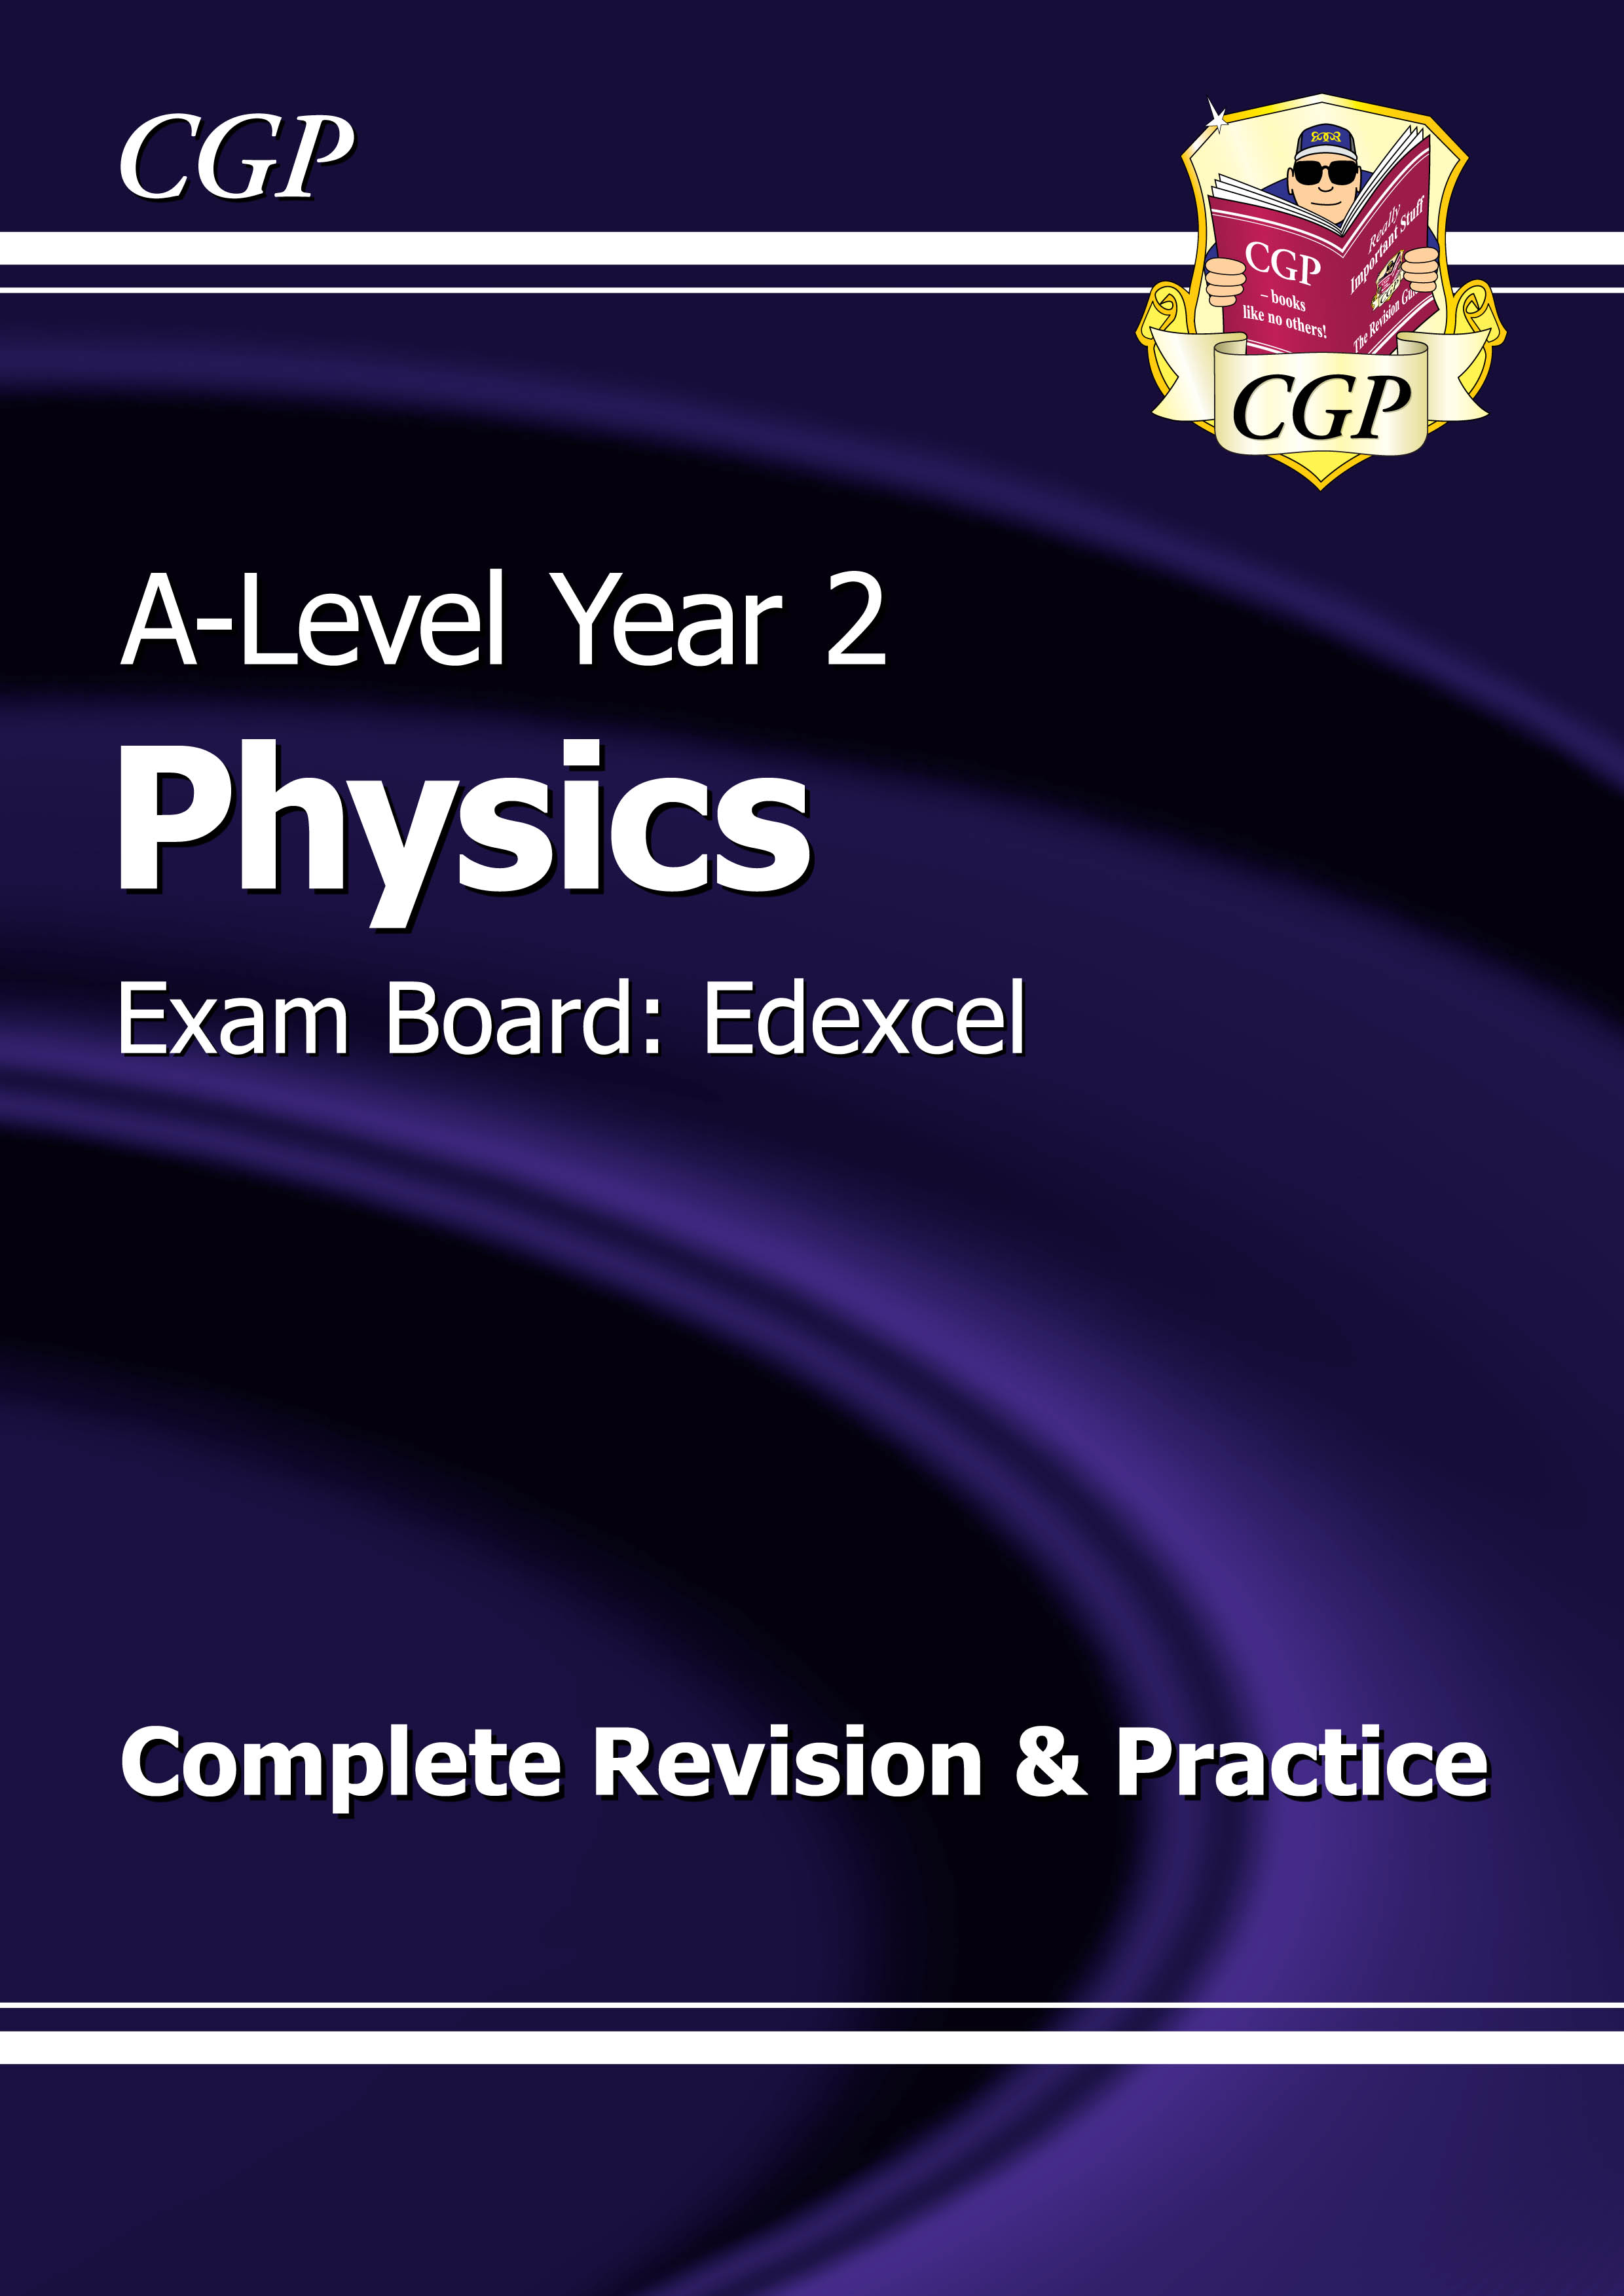 PER62DK - A-Level Physics: Edexcel Year 2 Complete Revision & Practice